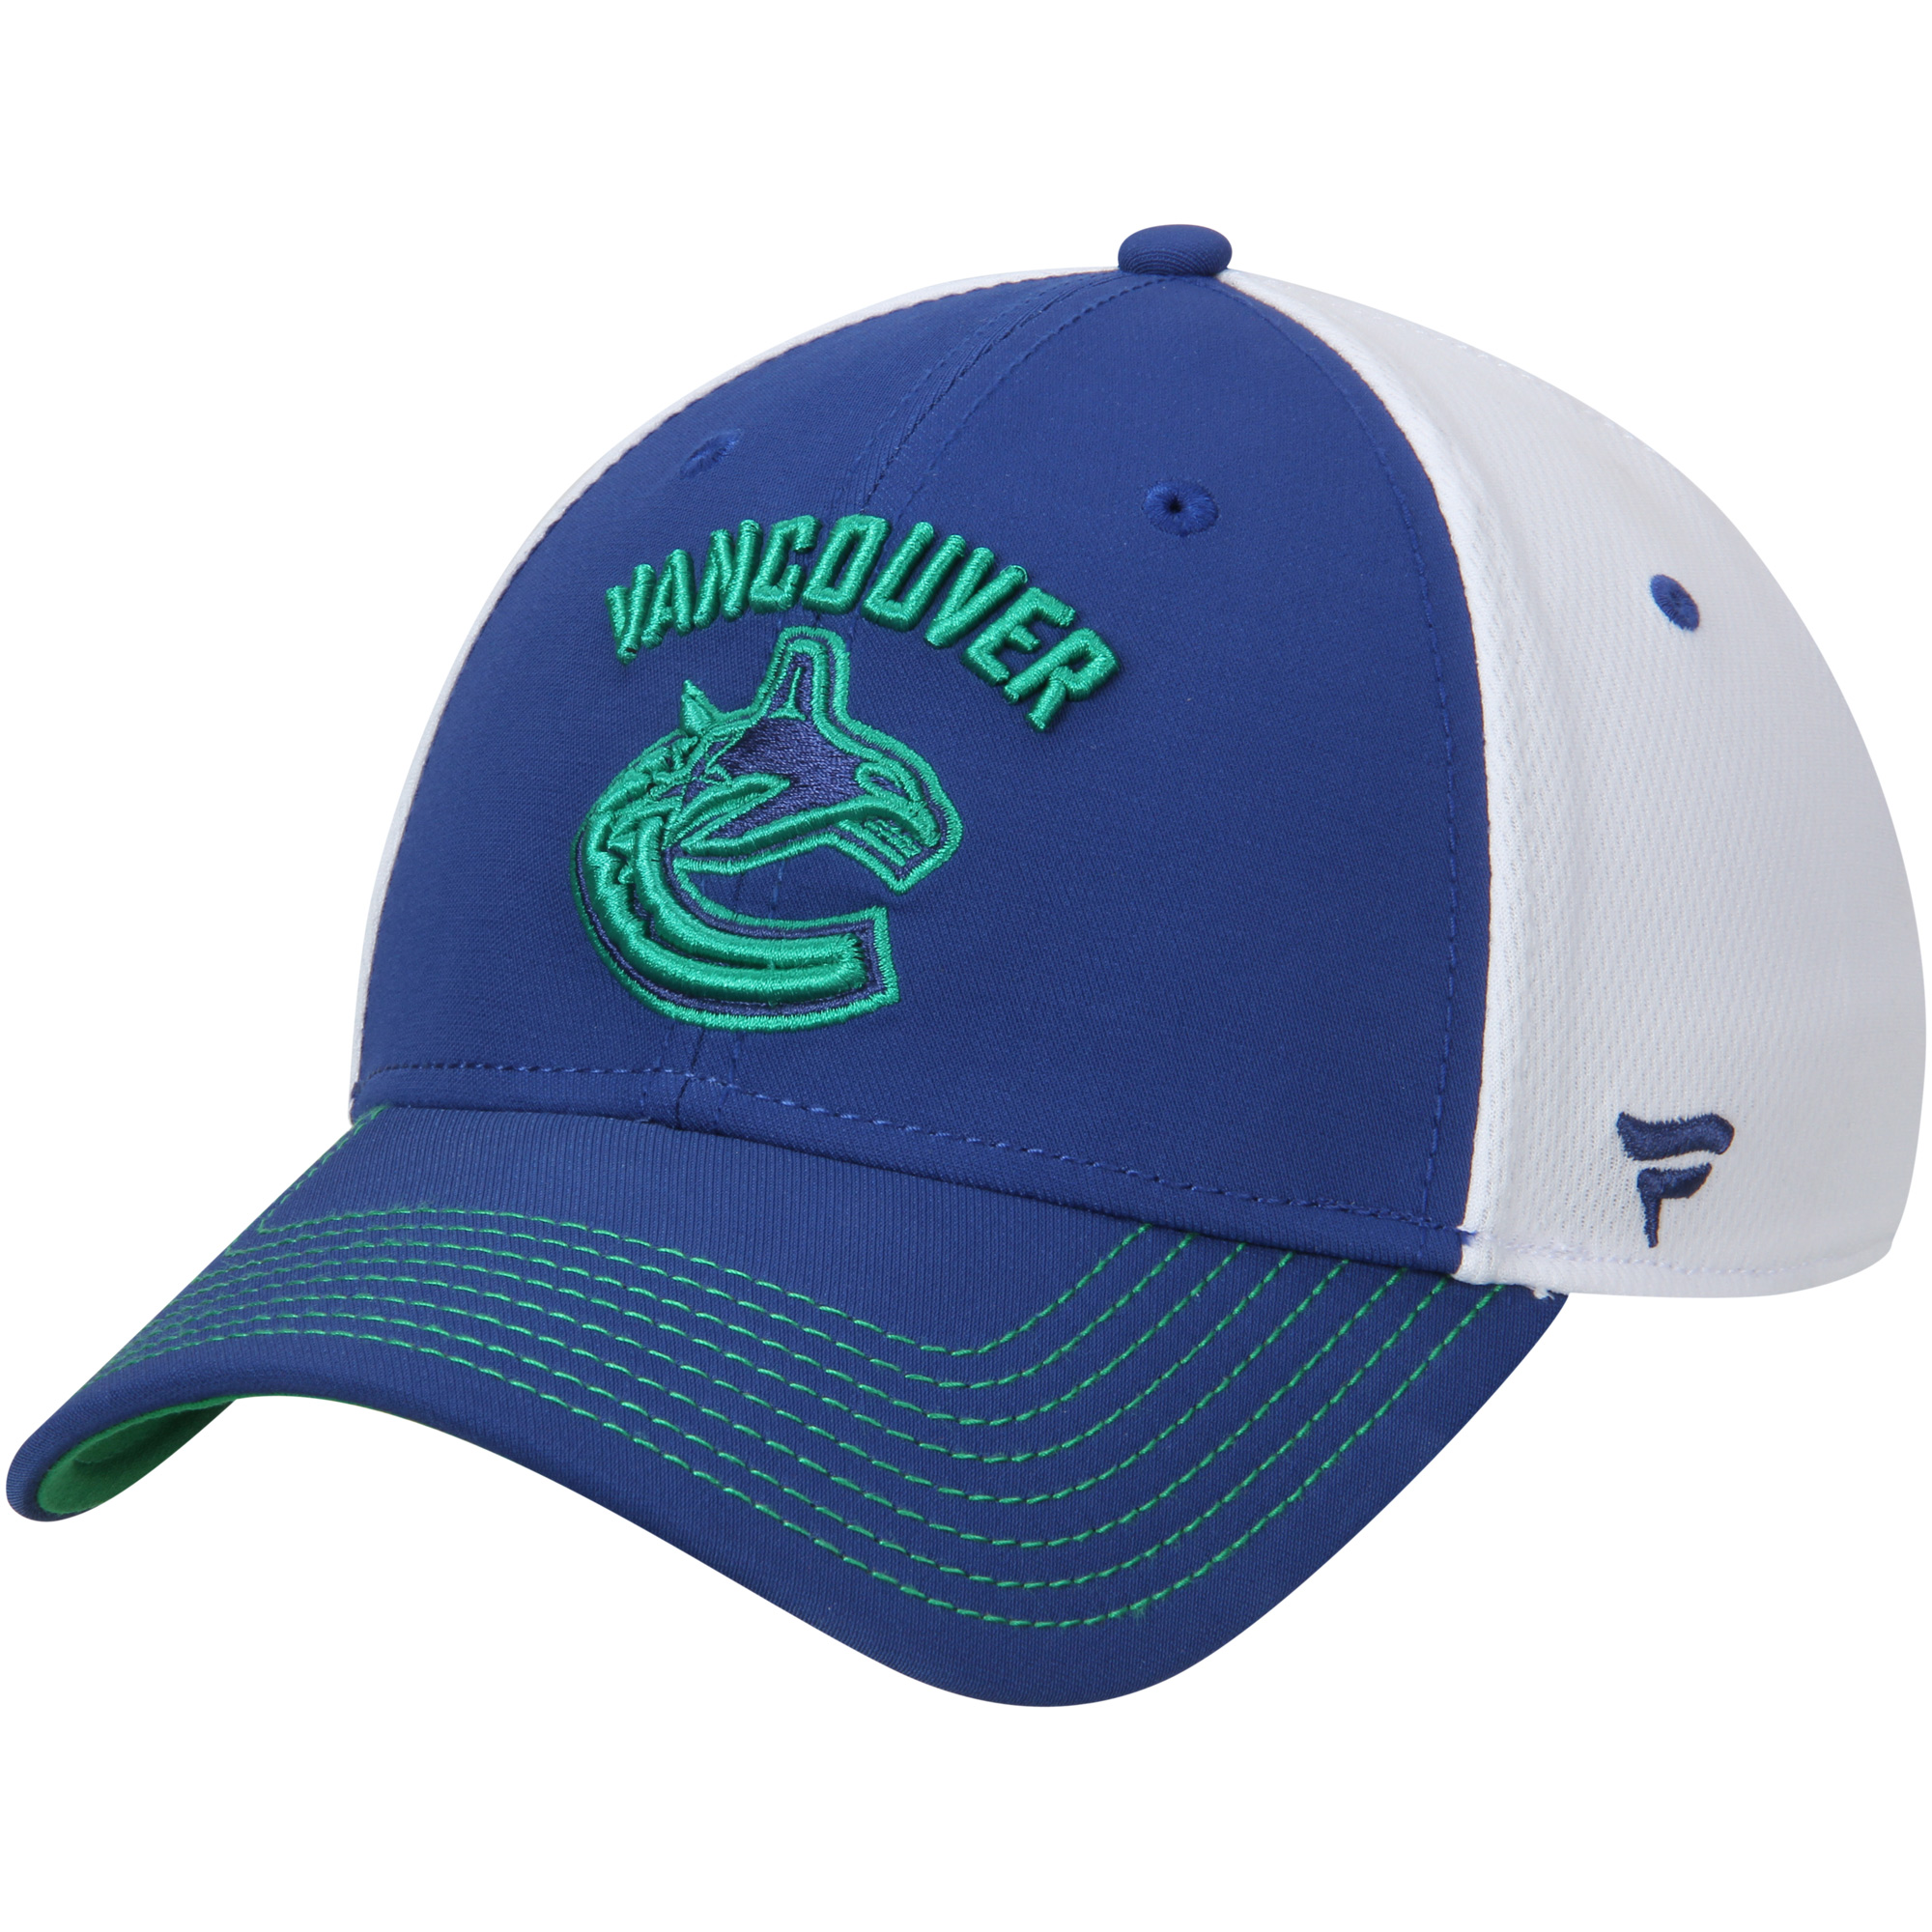 Vancouver Canucks Fanatics Branded Iconic Bold Speed Stretch Fit Flex Hat - Blue/White